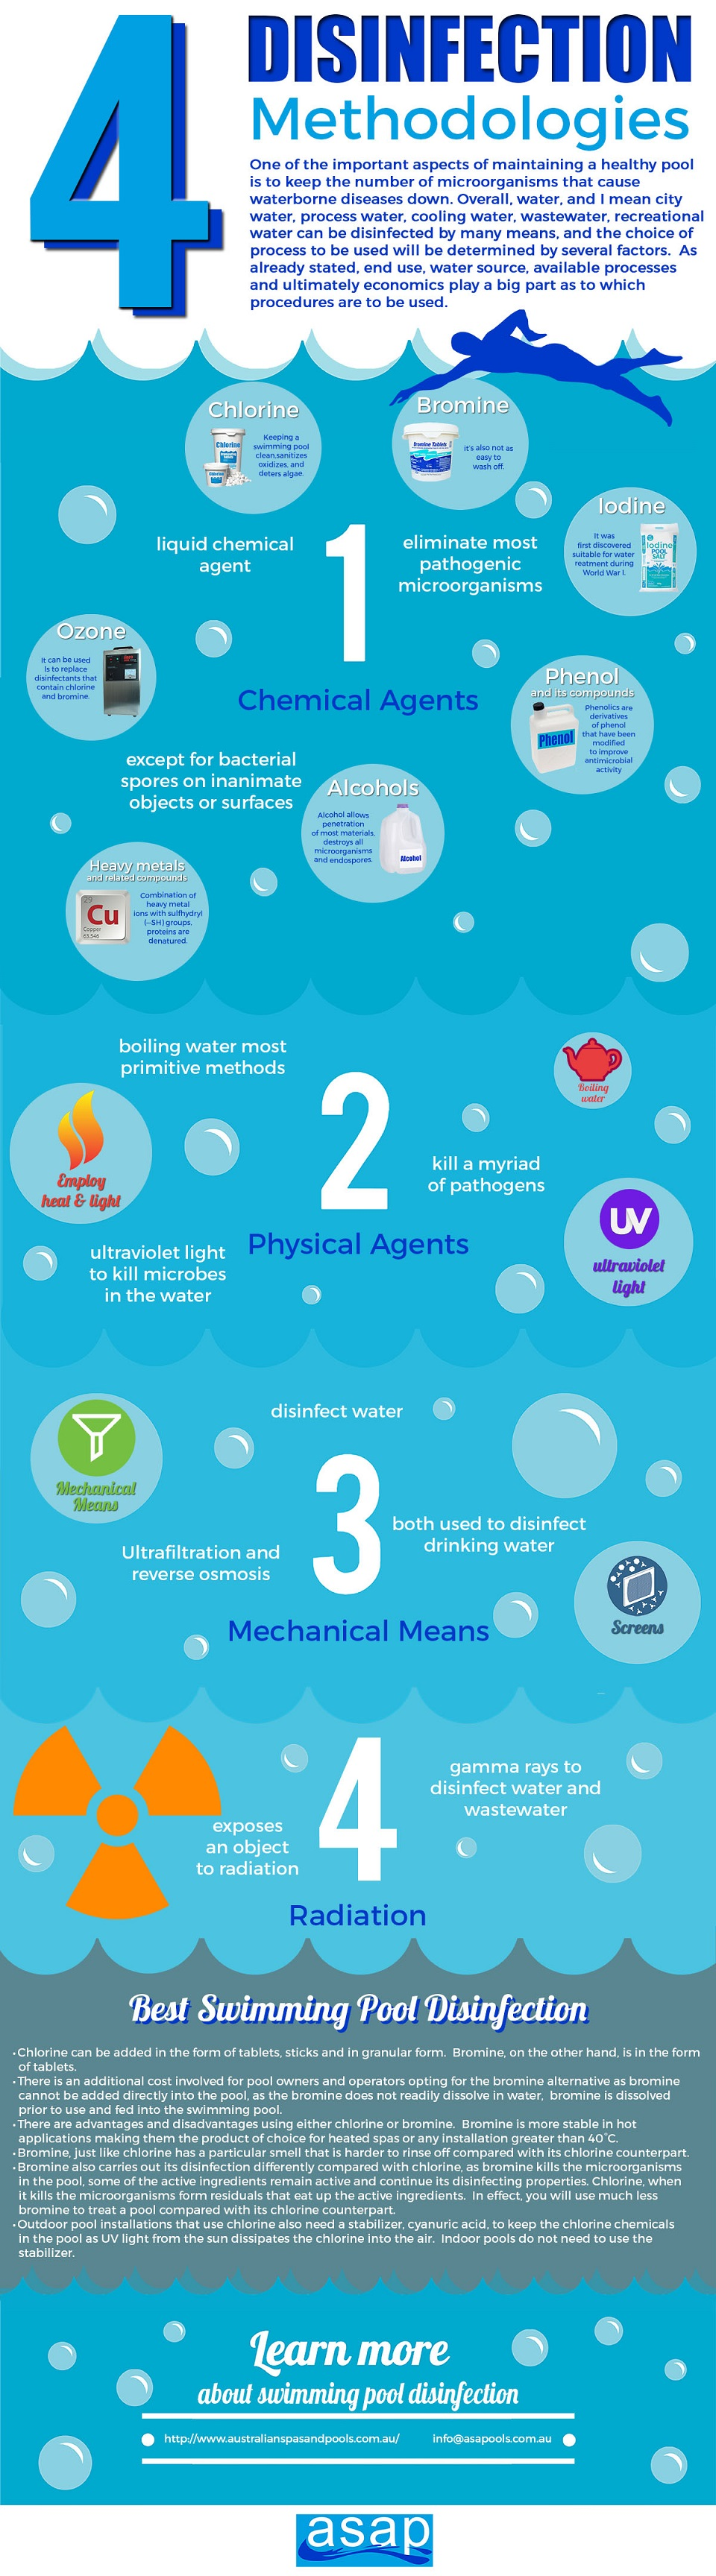 4 Disinfection Methodologies infographic